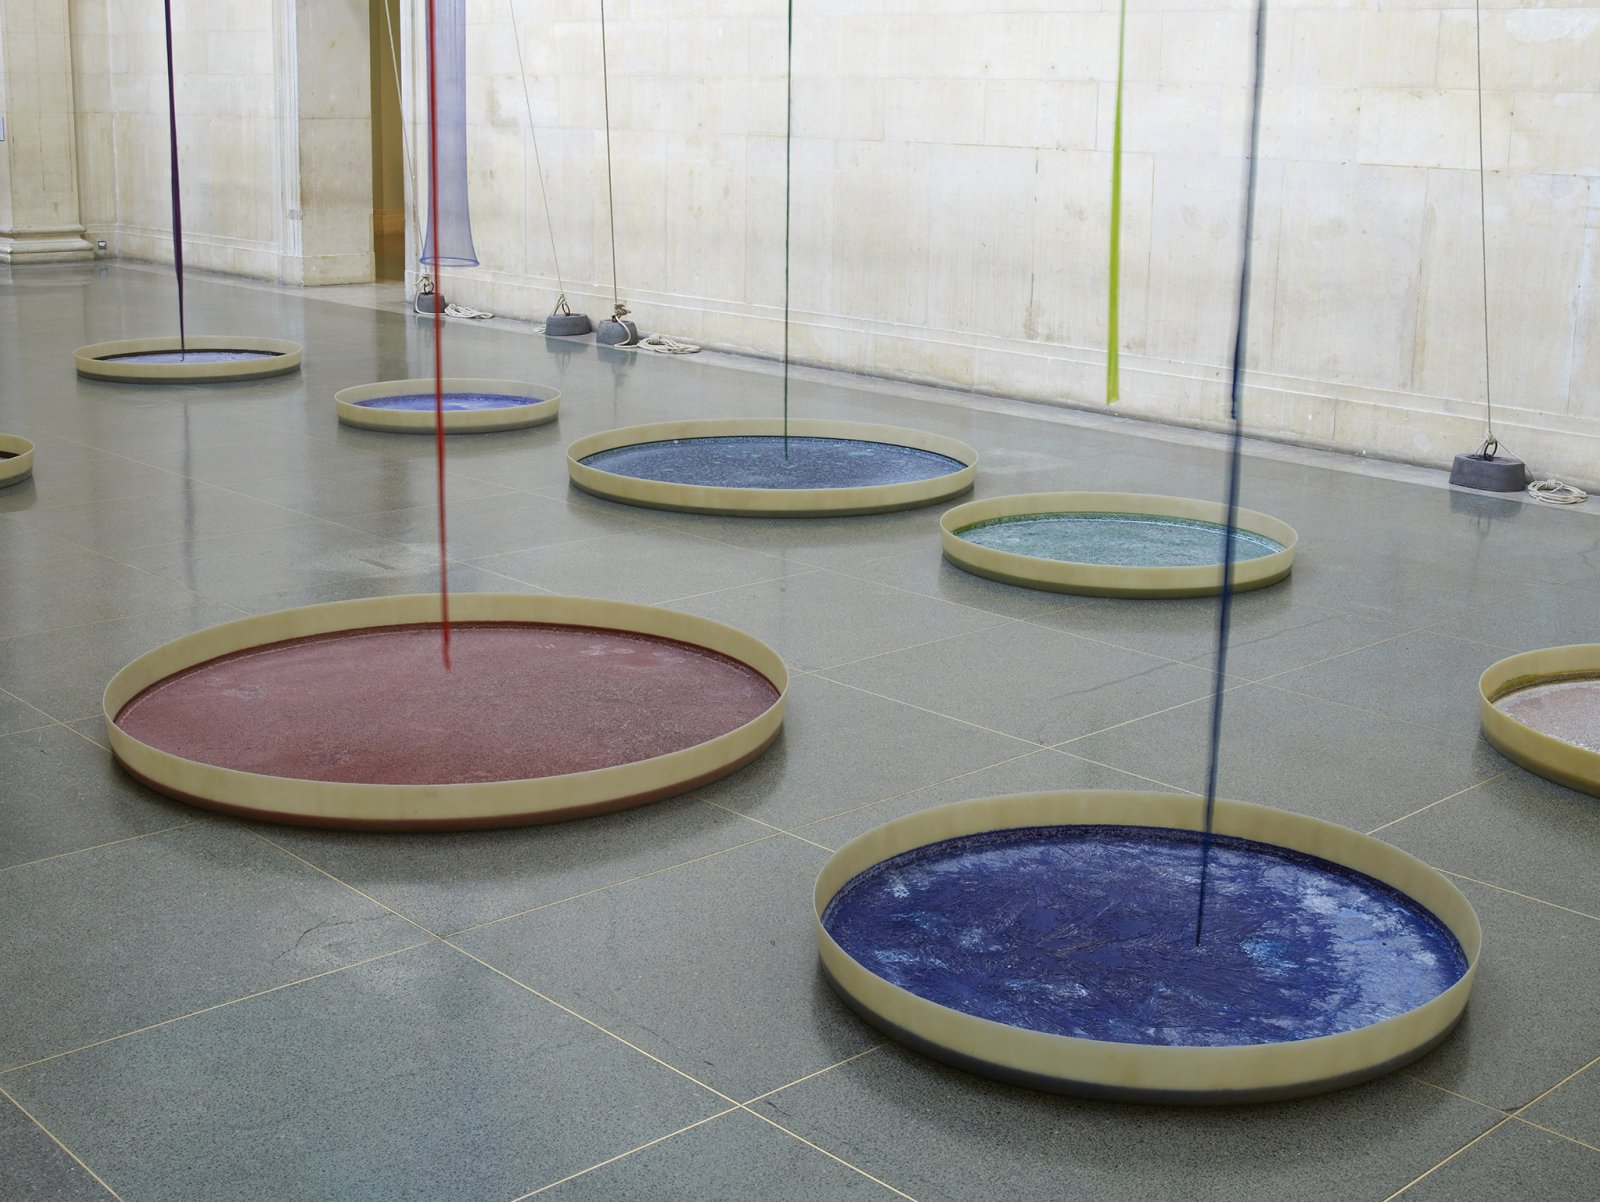 Christina Mackie, Filters (detail), 2015, mixed media, dimensions variable. Installation view, The filters, Tate Britain, London, UK, 2015 by Christina Mackie